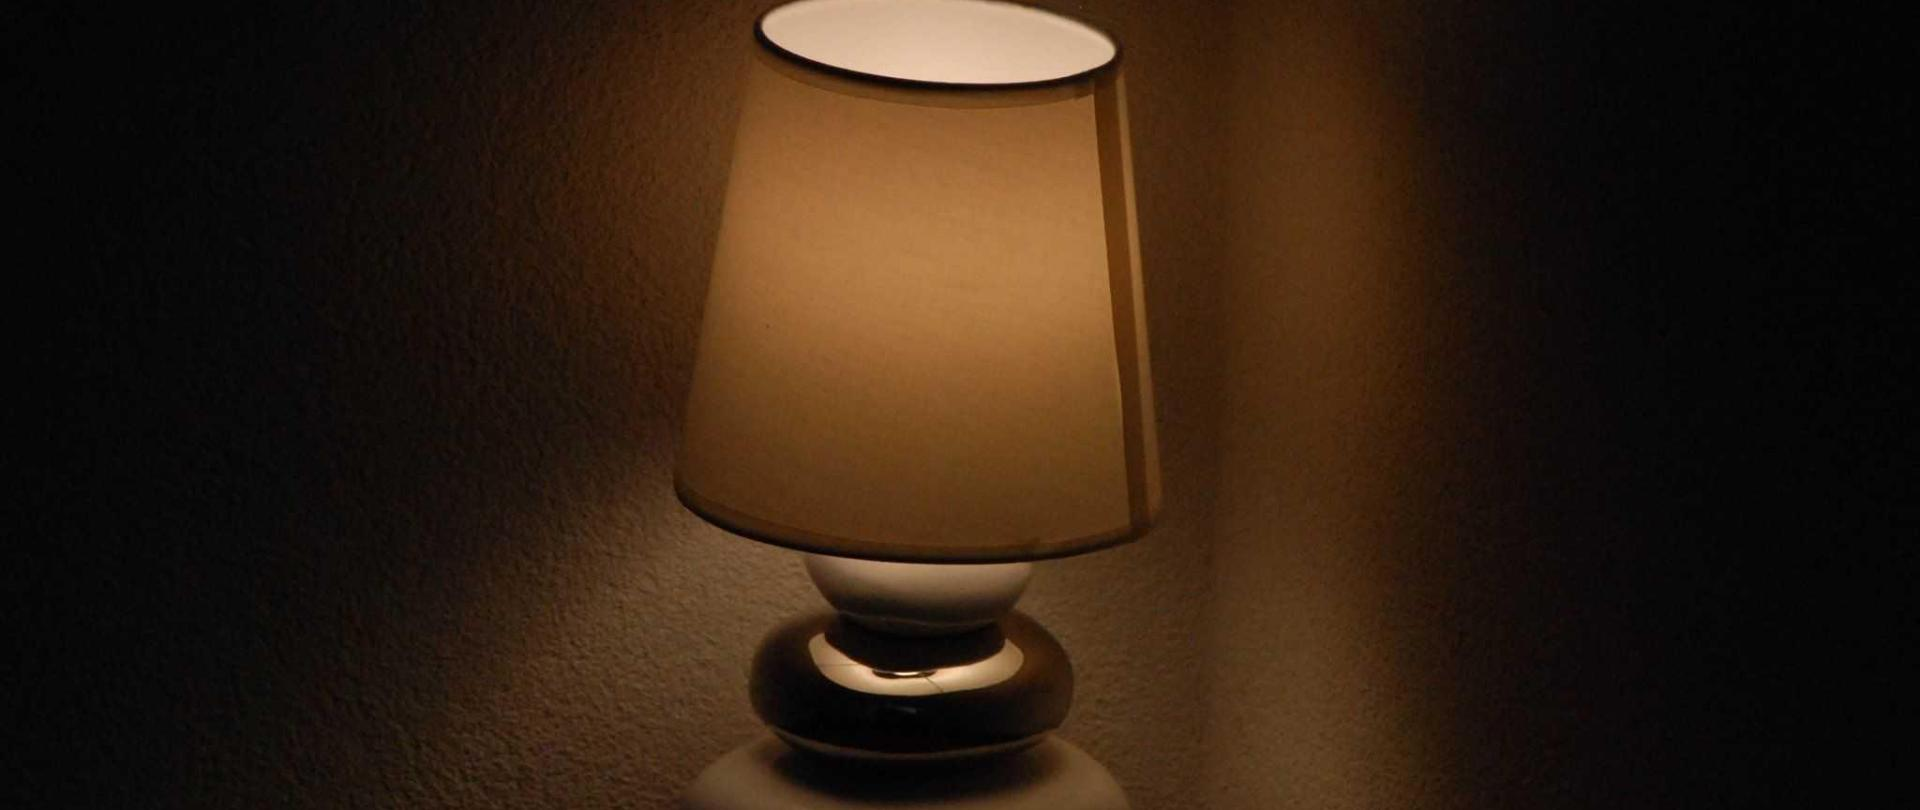 rojus-lamp-ghostly.jpg